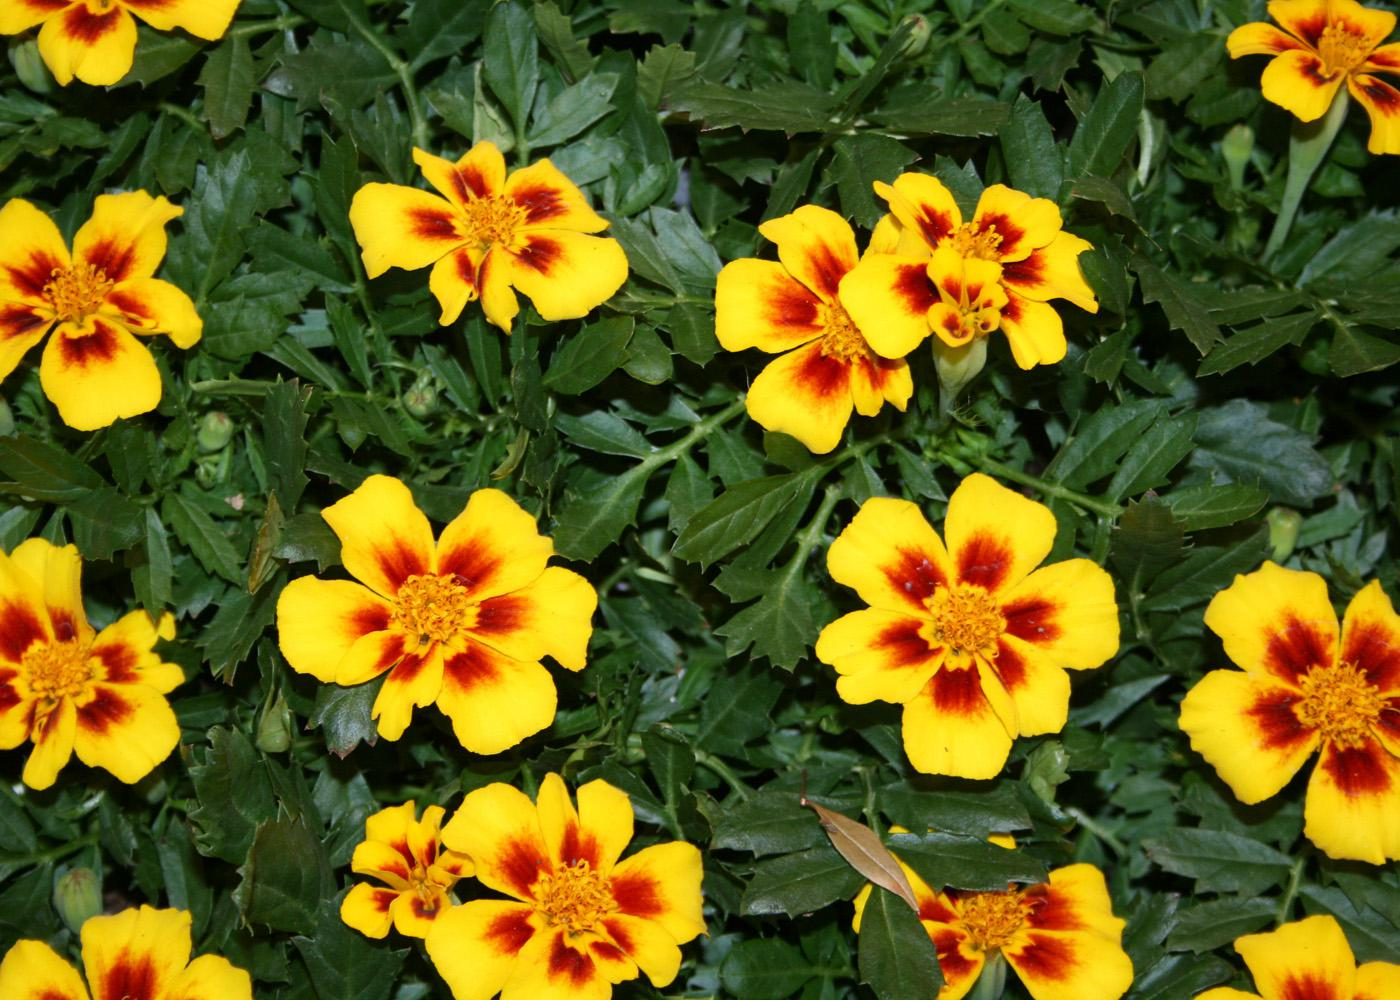 Disco Marietta is a single-flowered marigold that has yellow-orange petals featuring deep mahogany red splotches that look like paint brush strokes at the base of the flower.